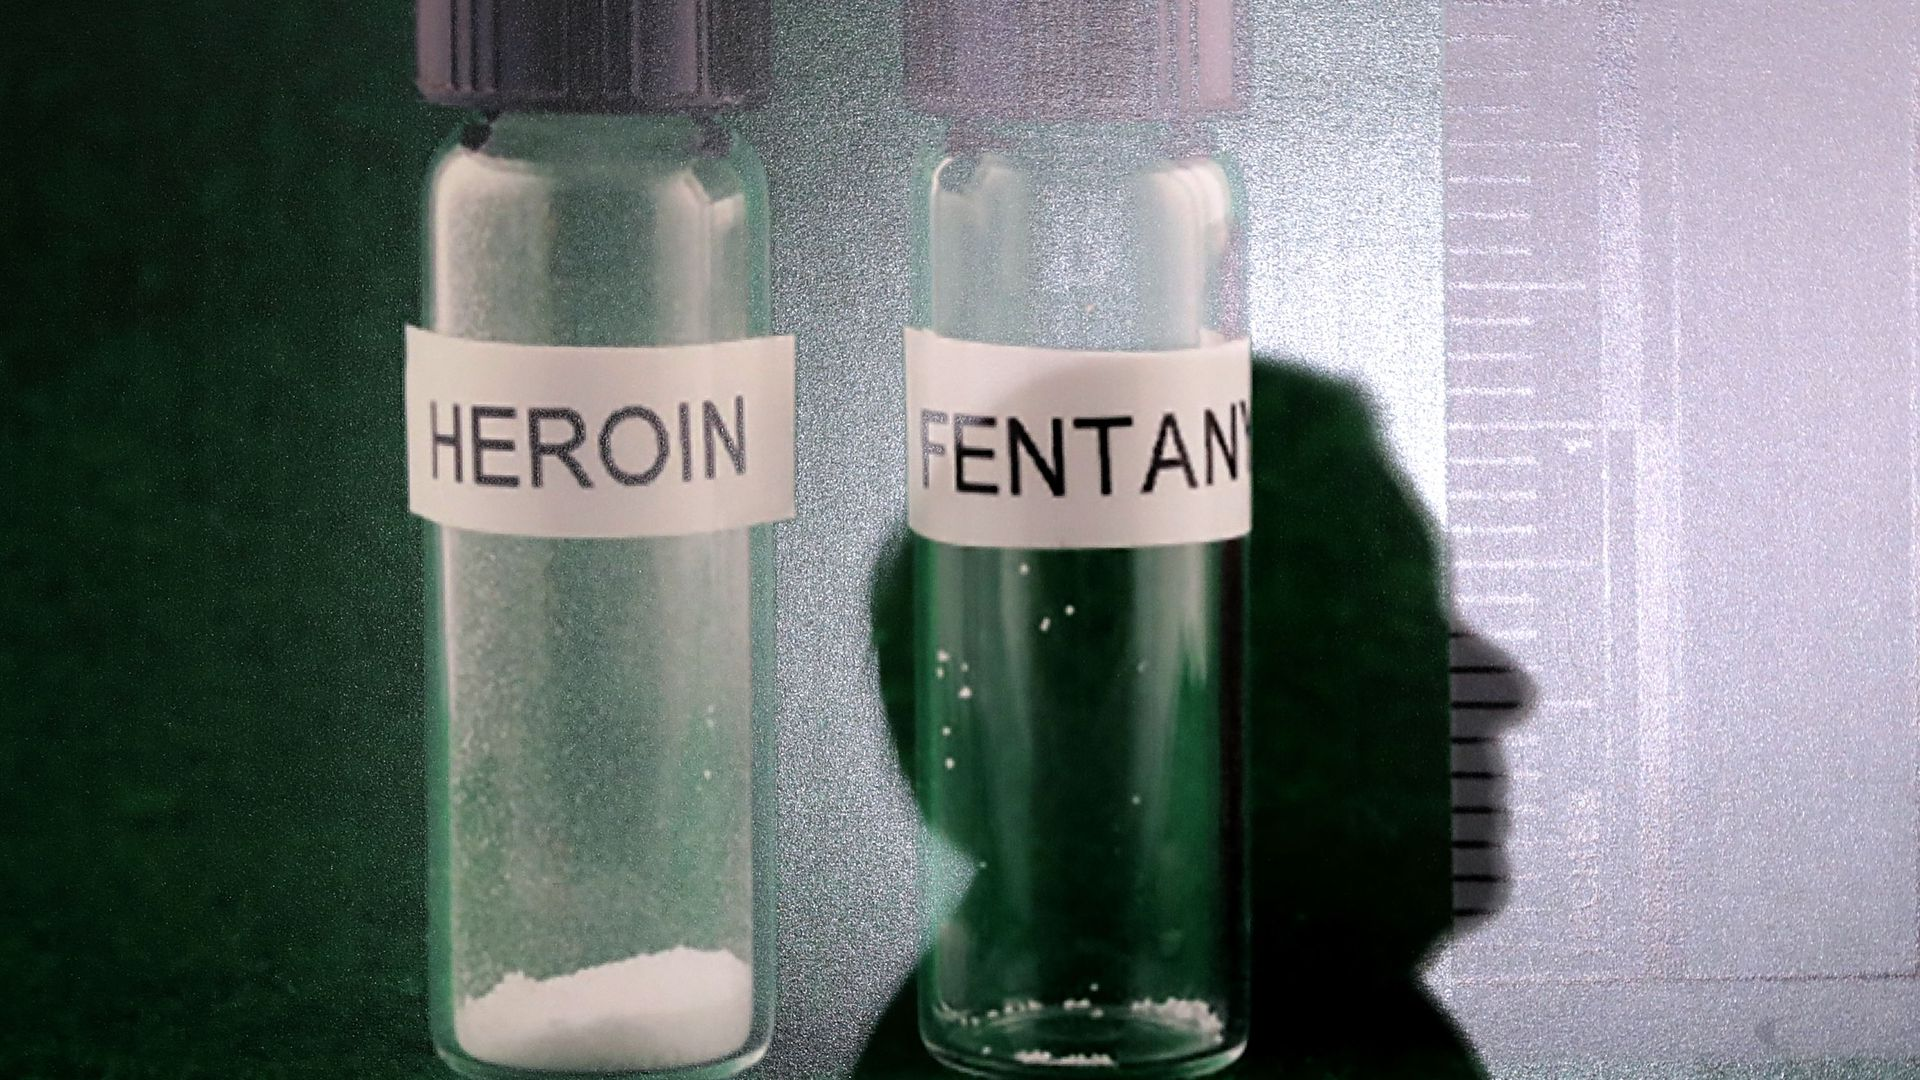 Jars of heroin and fentanyl